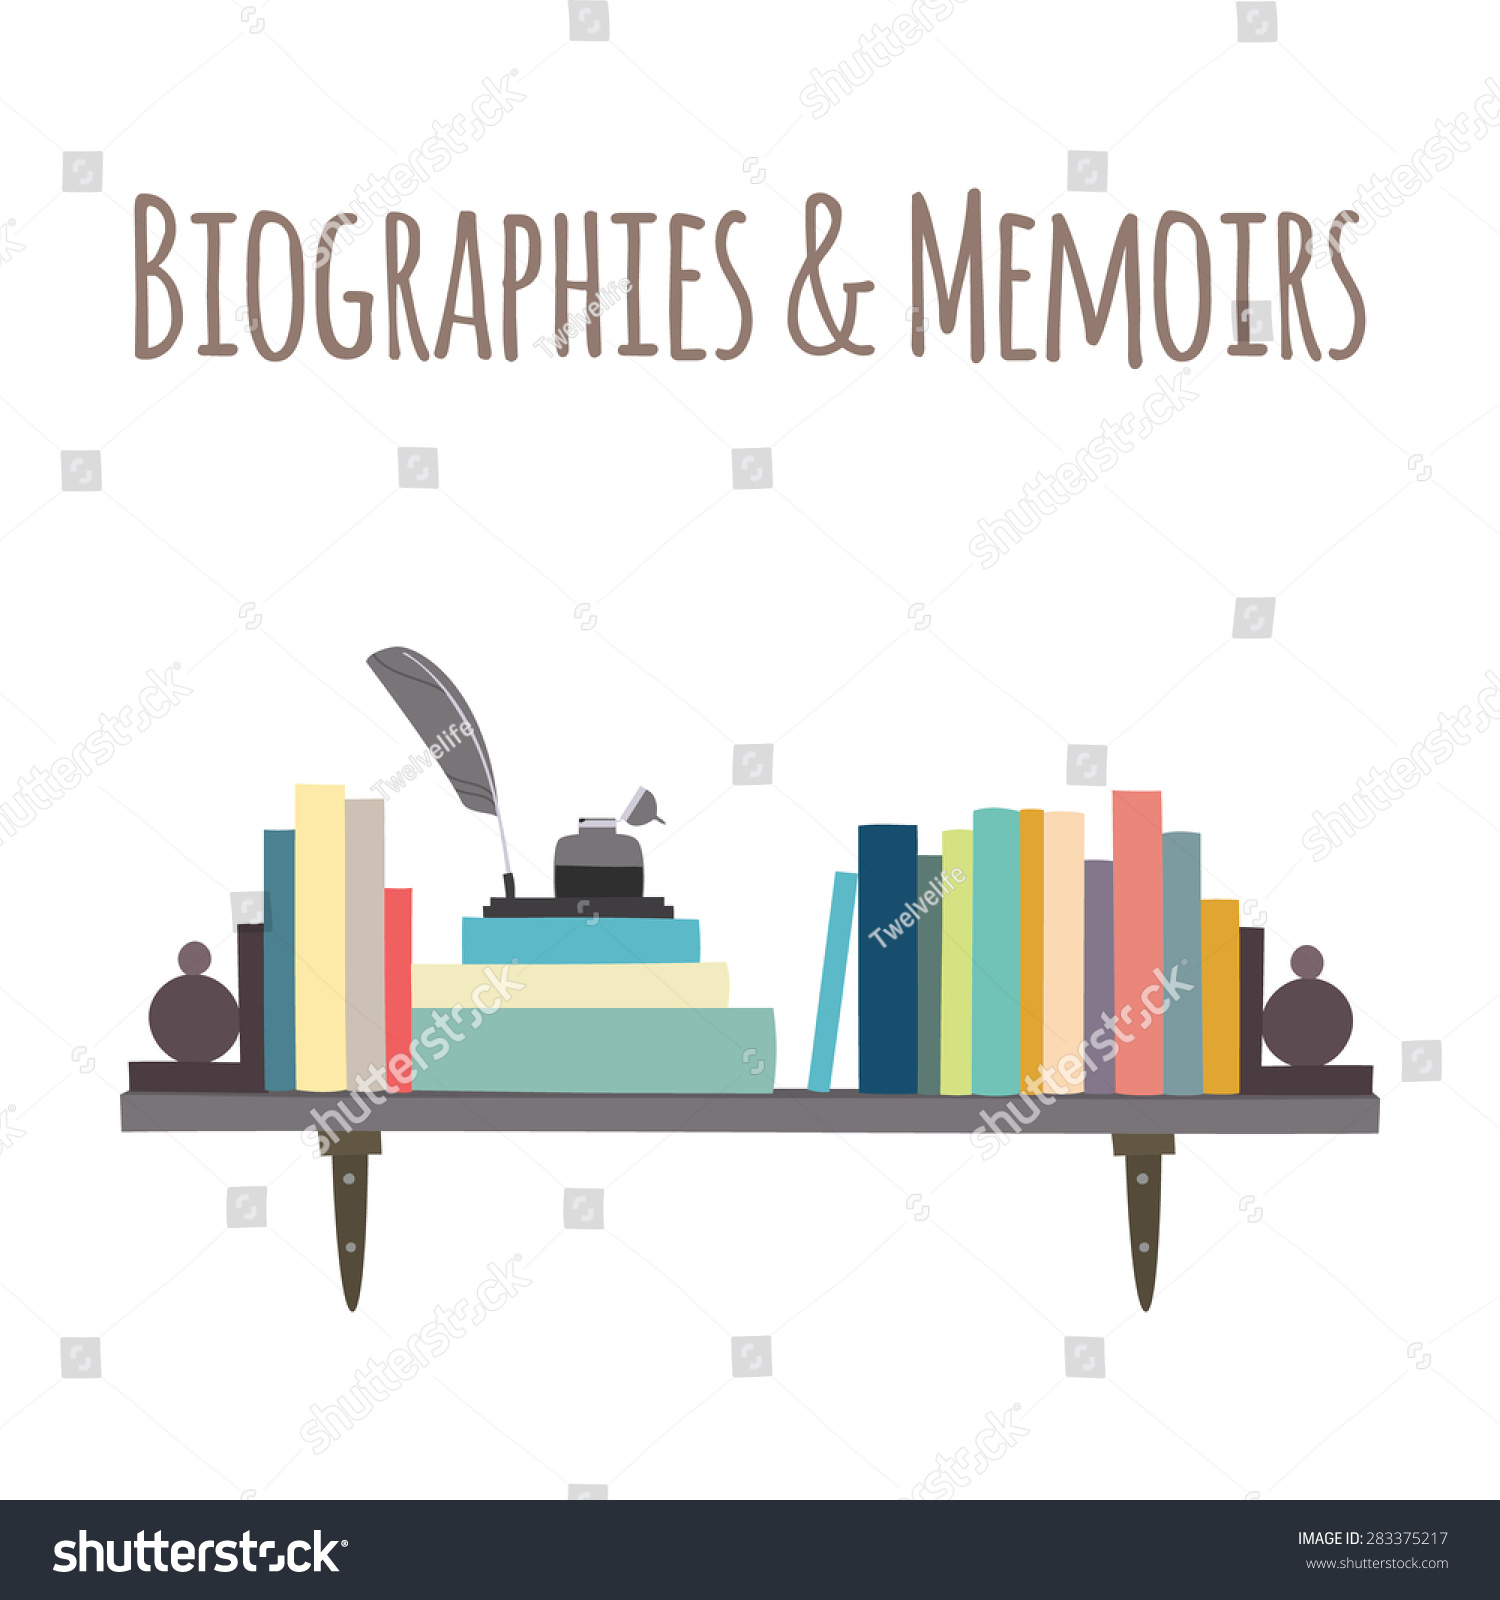 """Category for a bookstore or library. Bookshelves """"Biographies & Memoirs""""."""